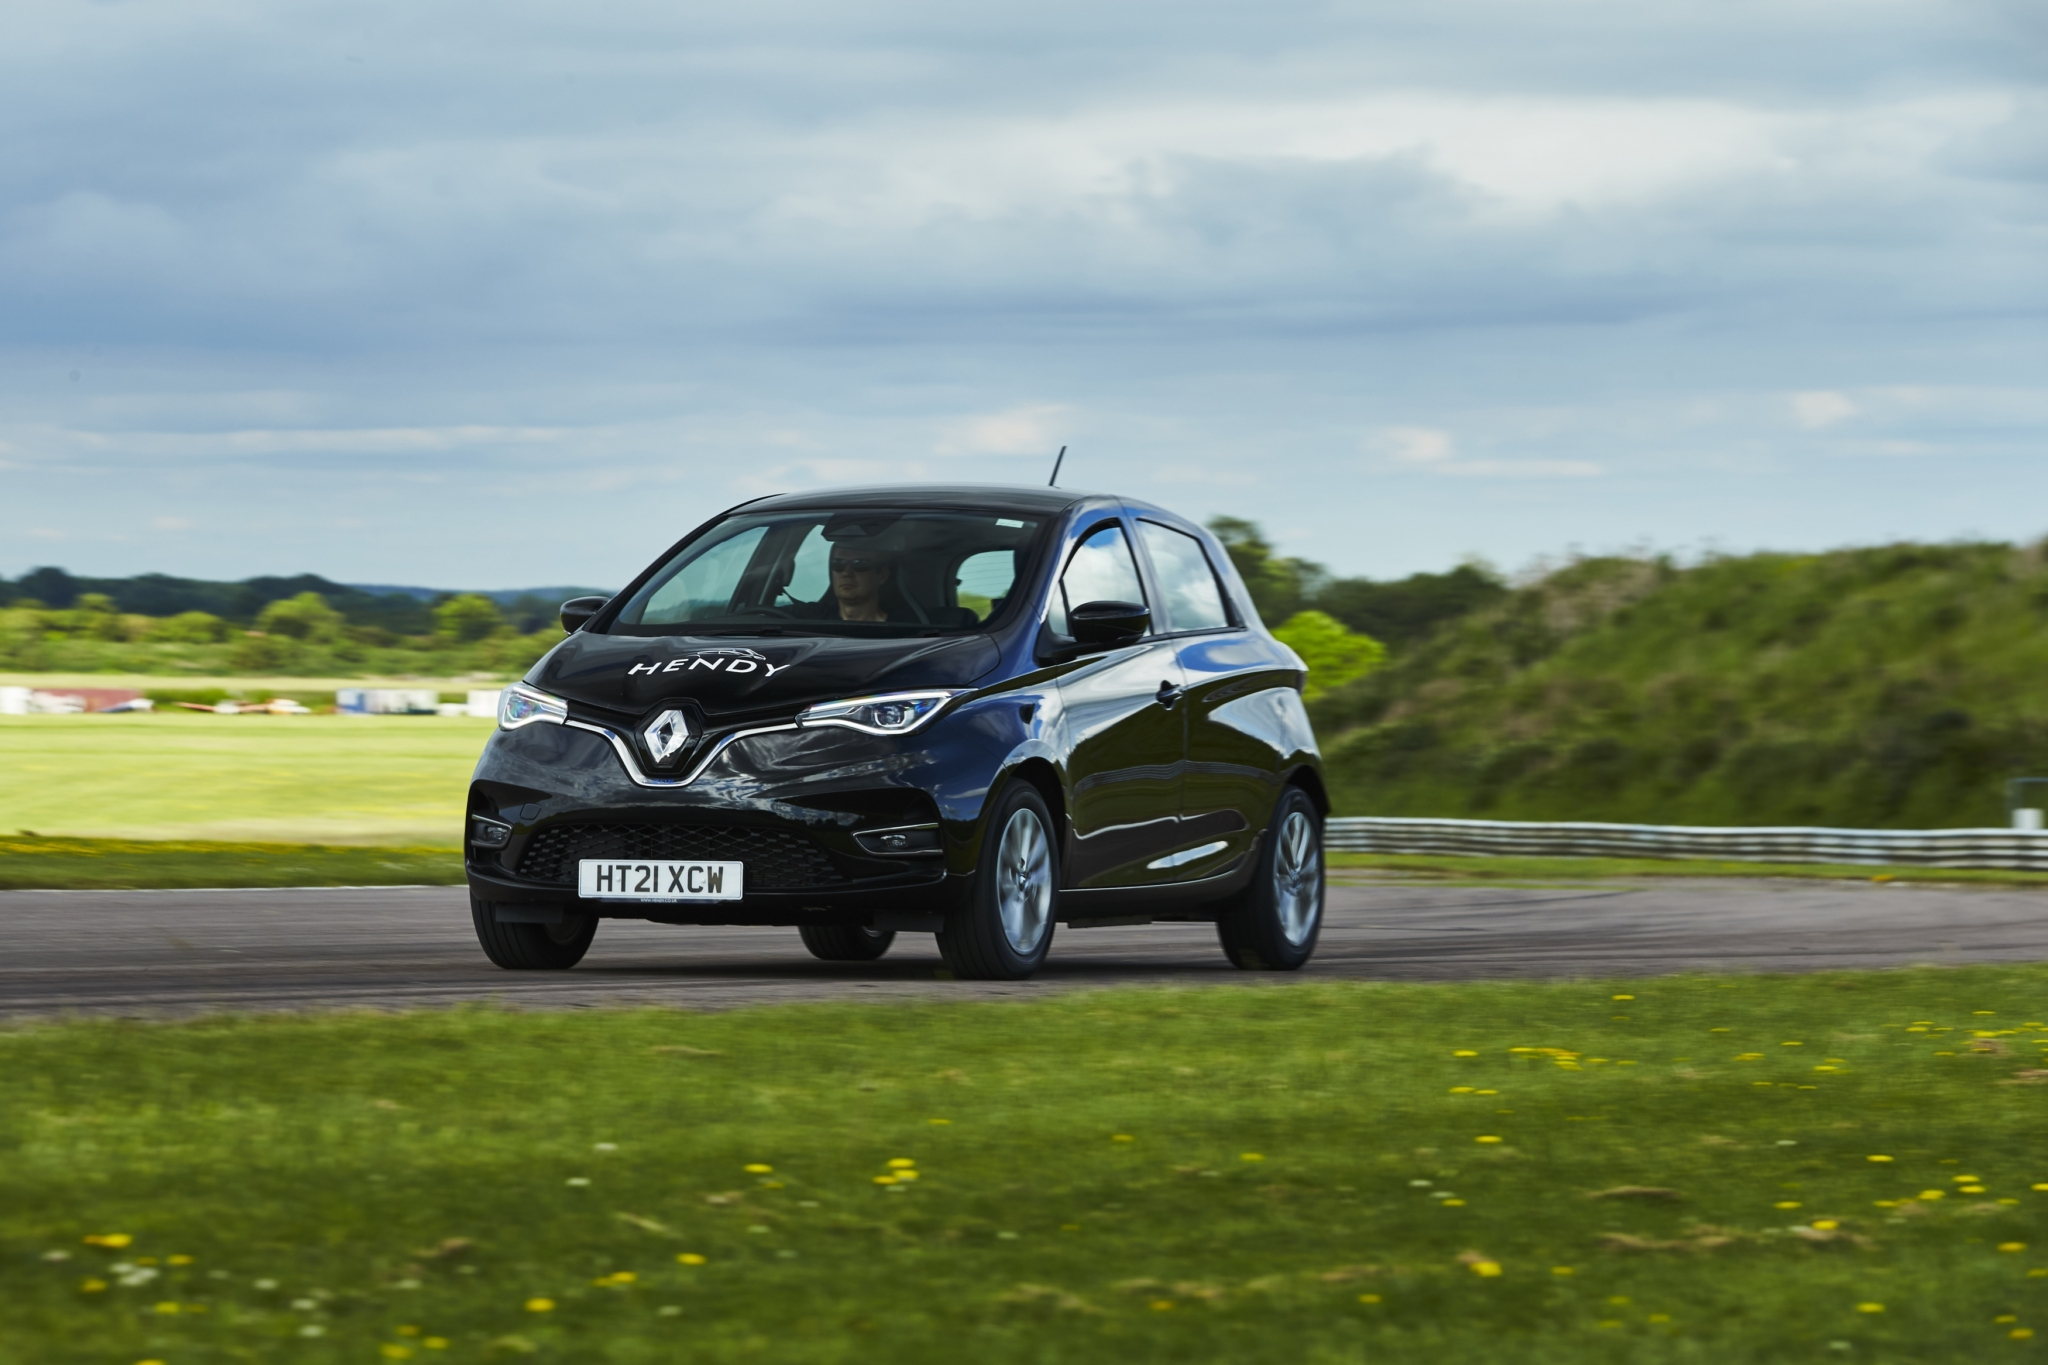 Renault ZOE sets new hypermiling record on Enso tyres